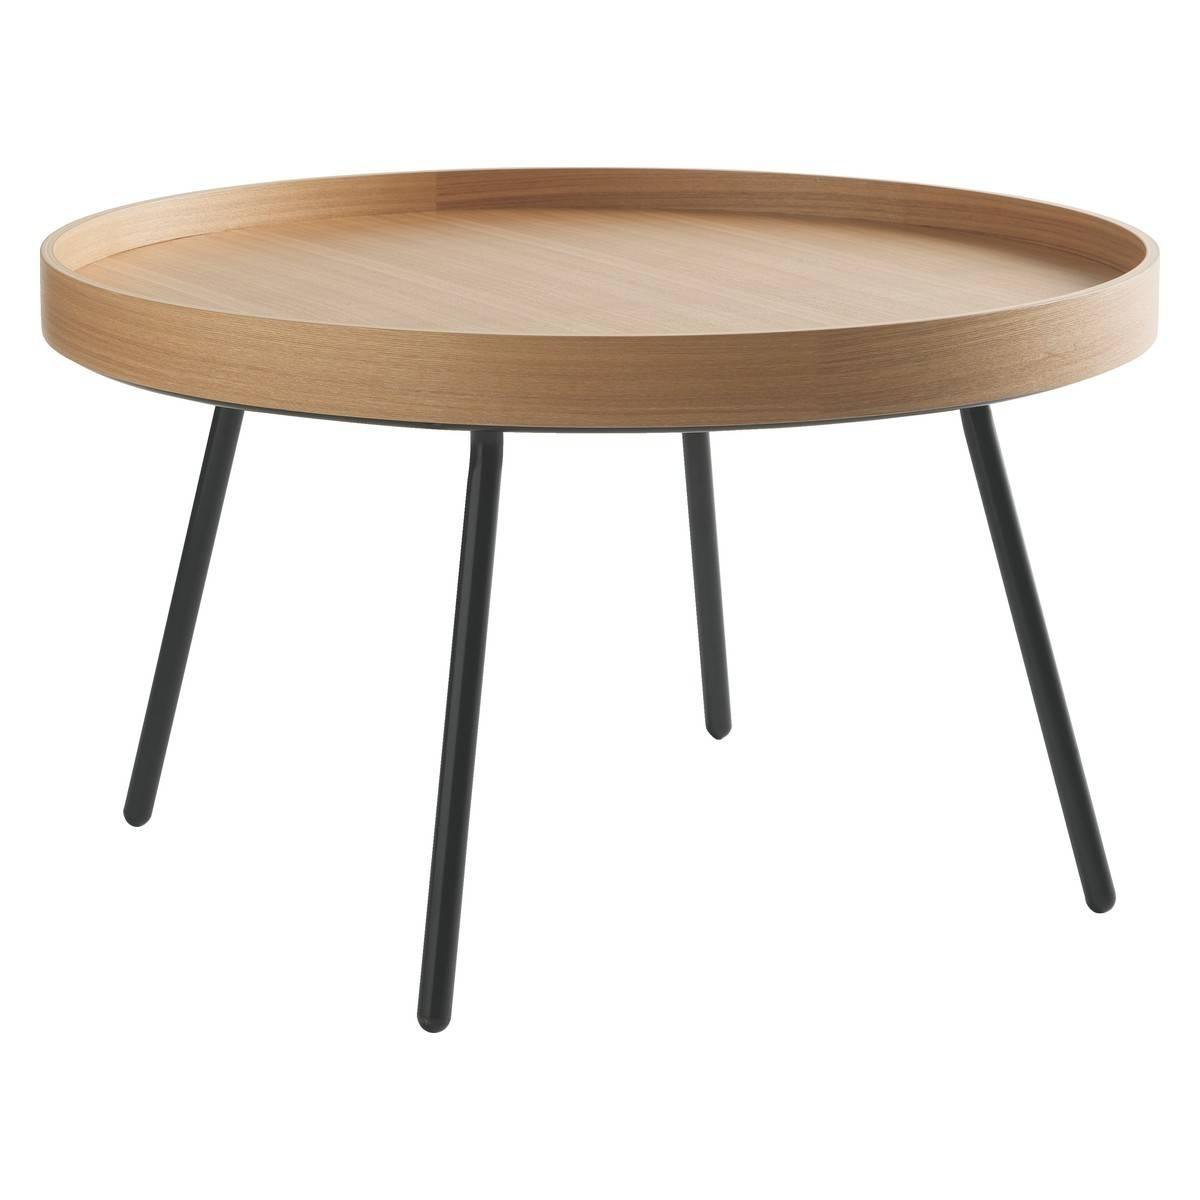 Coffee Tables; Modern Glass & Oak With Storage – Habitat In Coffee Table Rounded Corners (View 12 of 30)